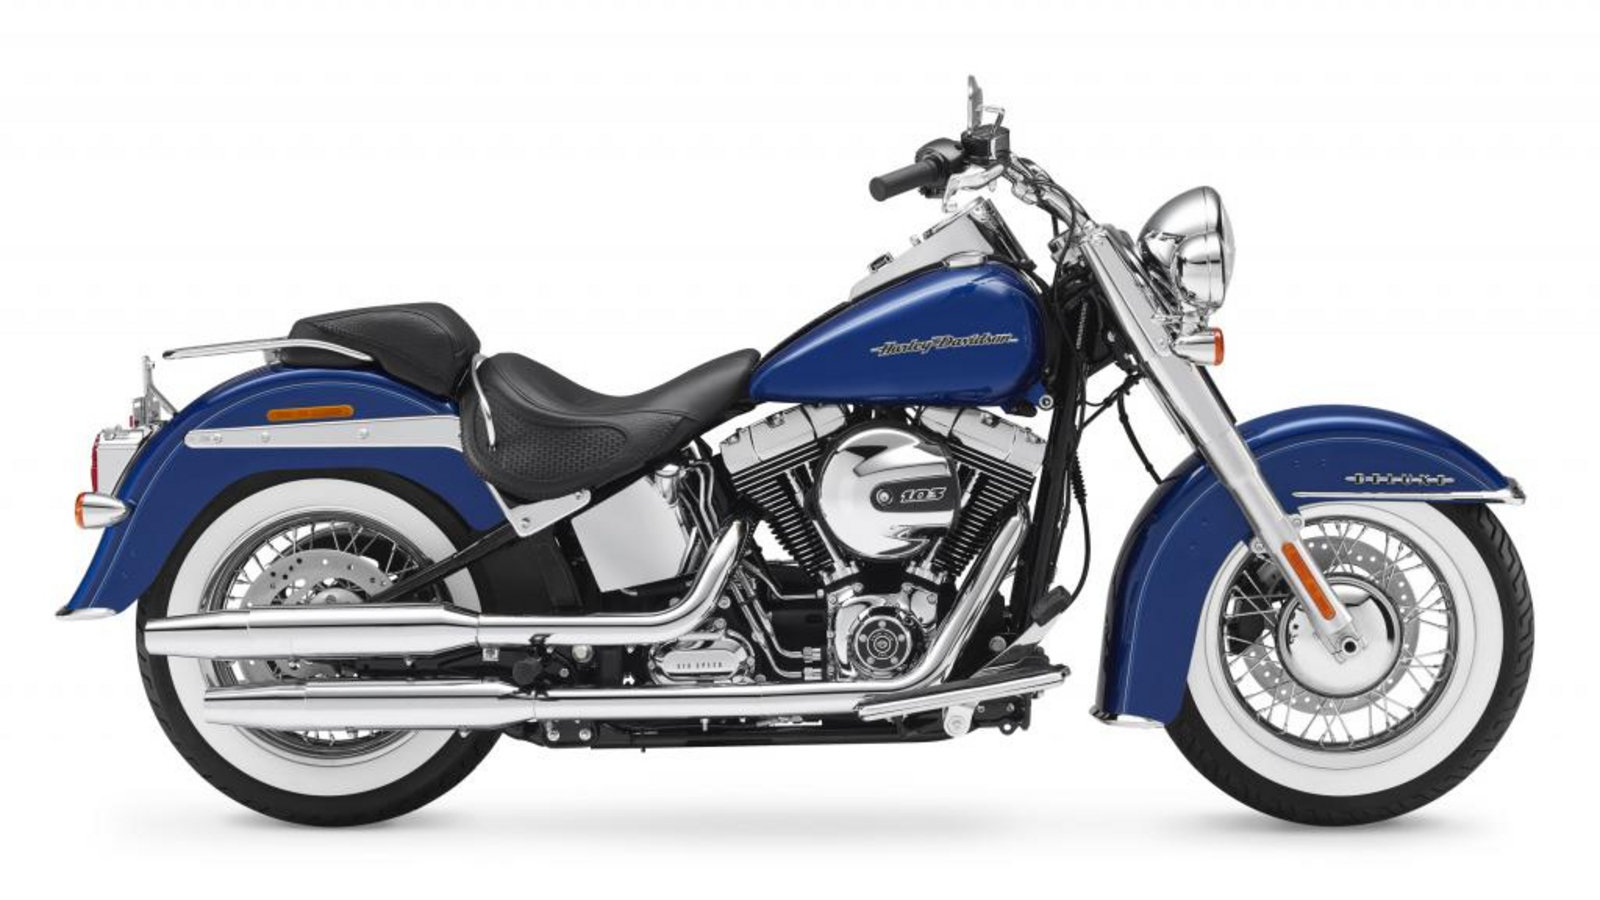 Harley Davidson Softail: 2017 Harley-Davidson Softail Deluxe Review